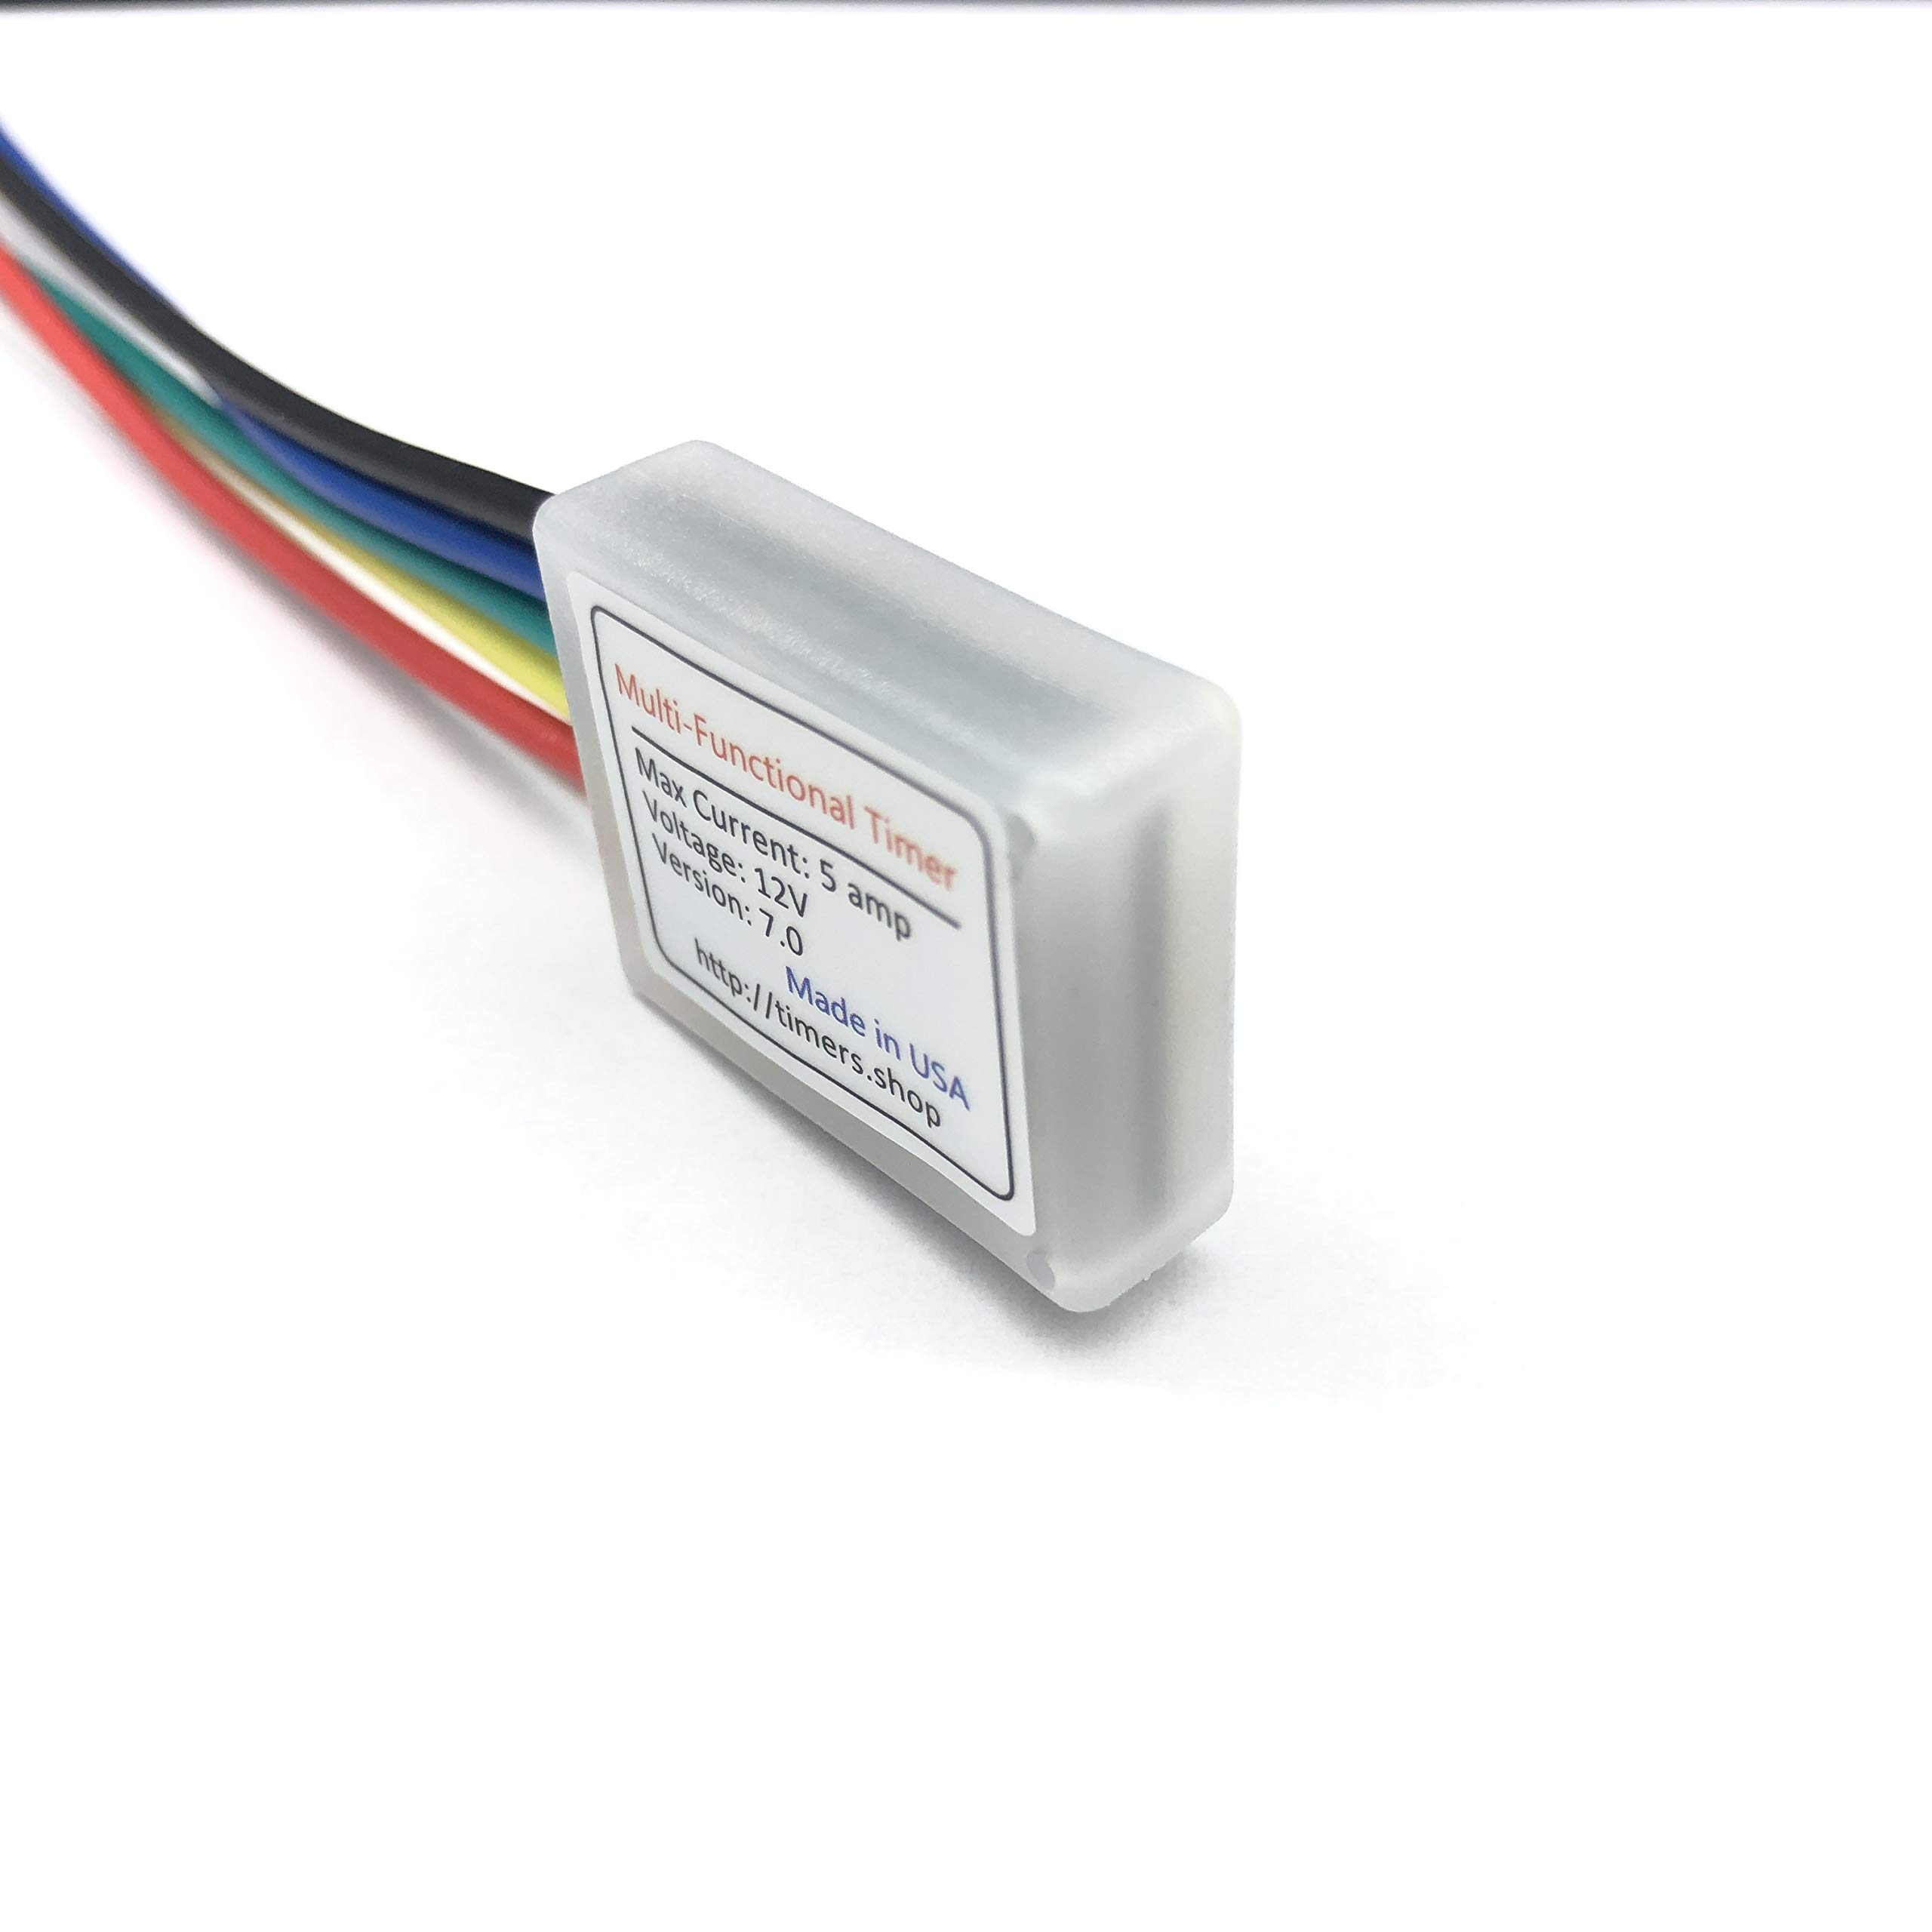 Small Timer Time Delay Relay .1 Sec to 400 days. 6V 12V 18V 5A. Power on or Off Delay, Cycling and More by Timers.Shop